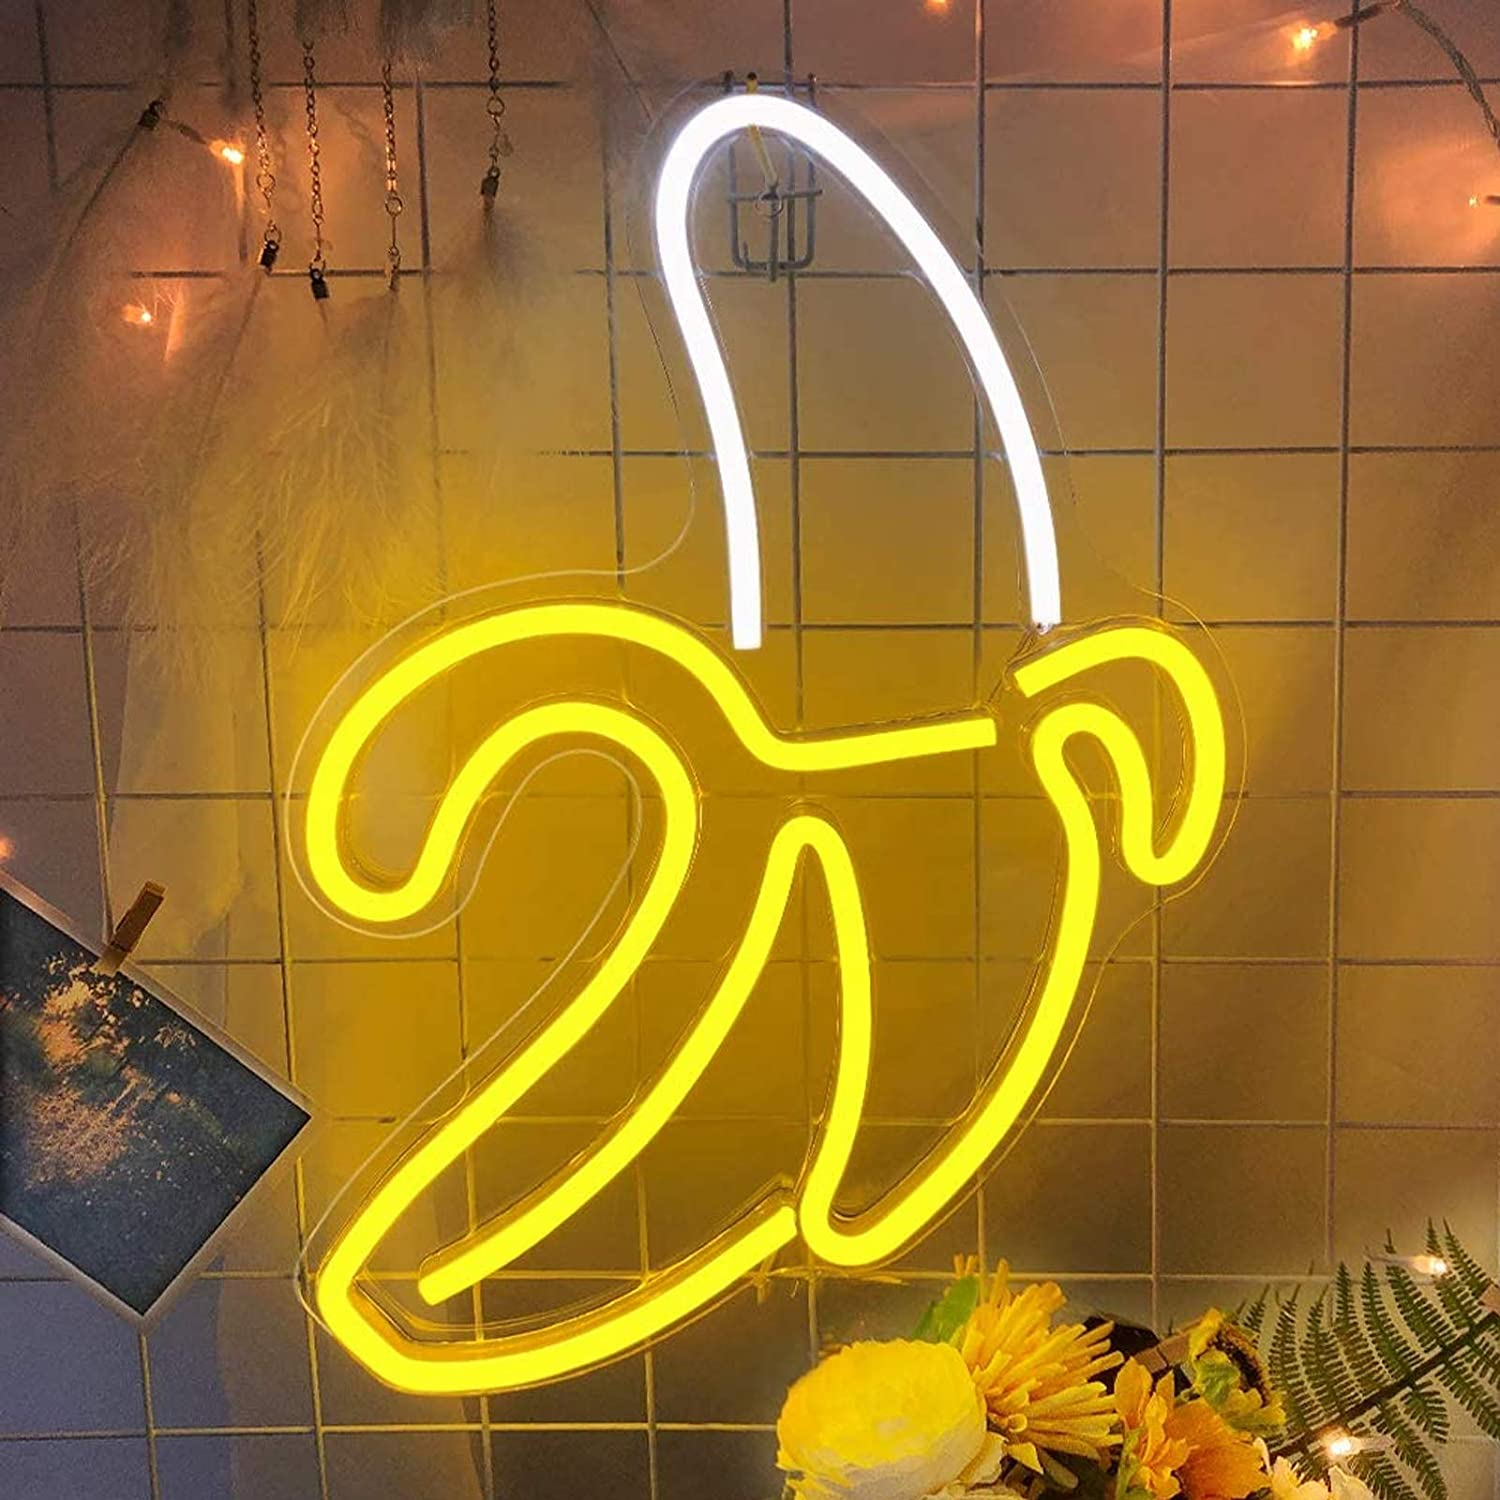 iceagle Banana LED Neon Sign for Wall Decor,USB Decor LED Signs,Neon Lights for Bedroom,Light Up Signs Decorative Neon Light Sign for Home,Christmas,Party,Kids Living Room